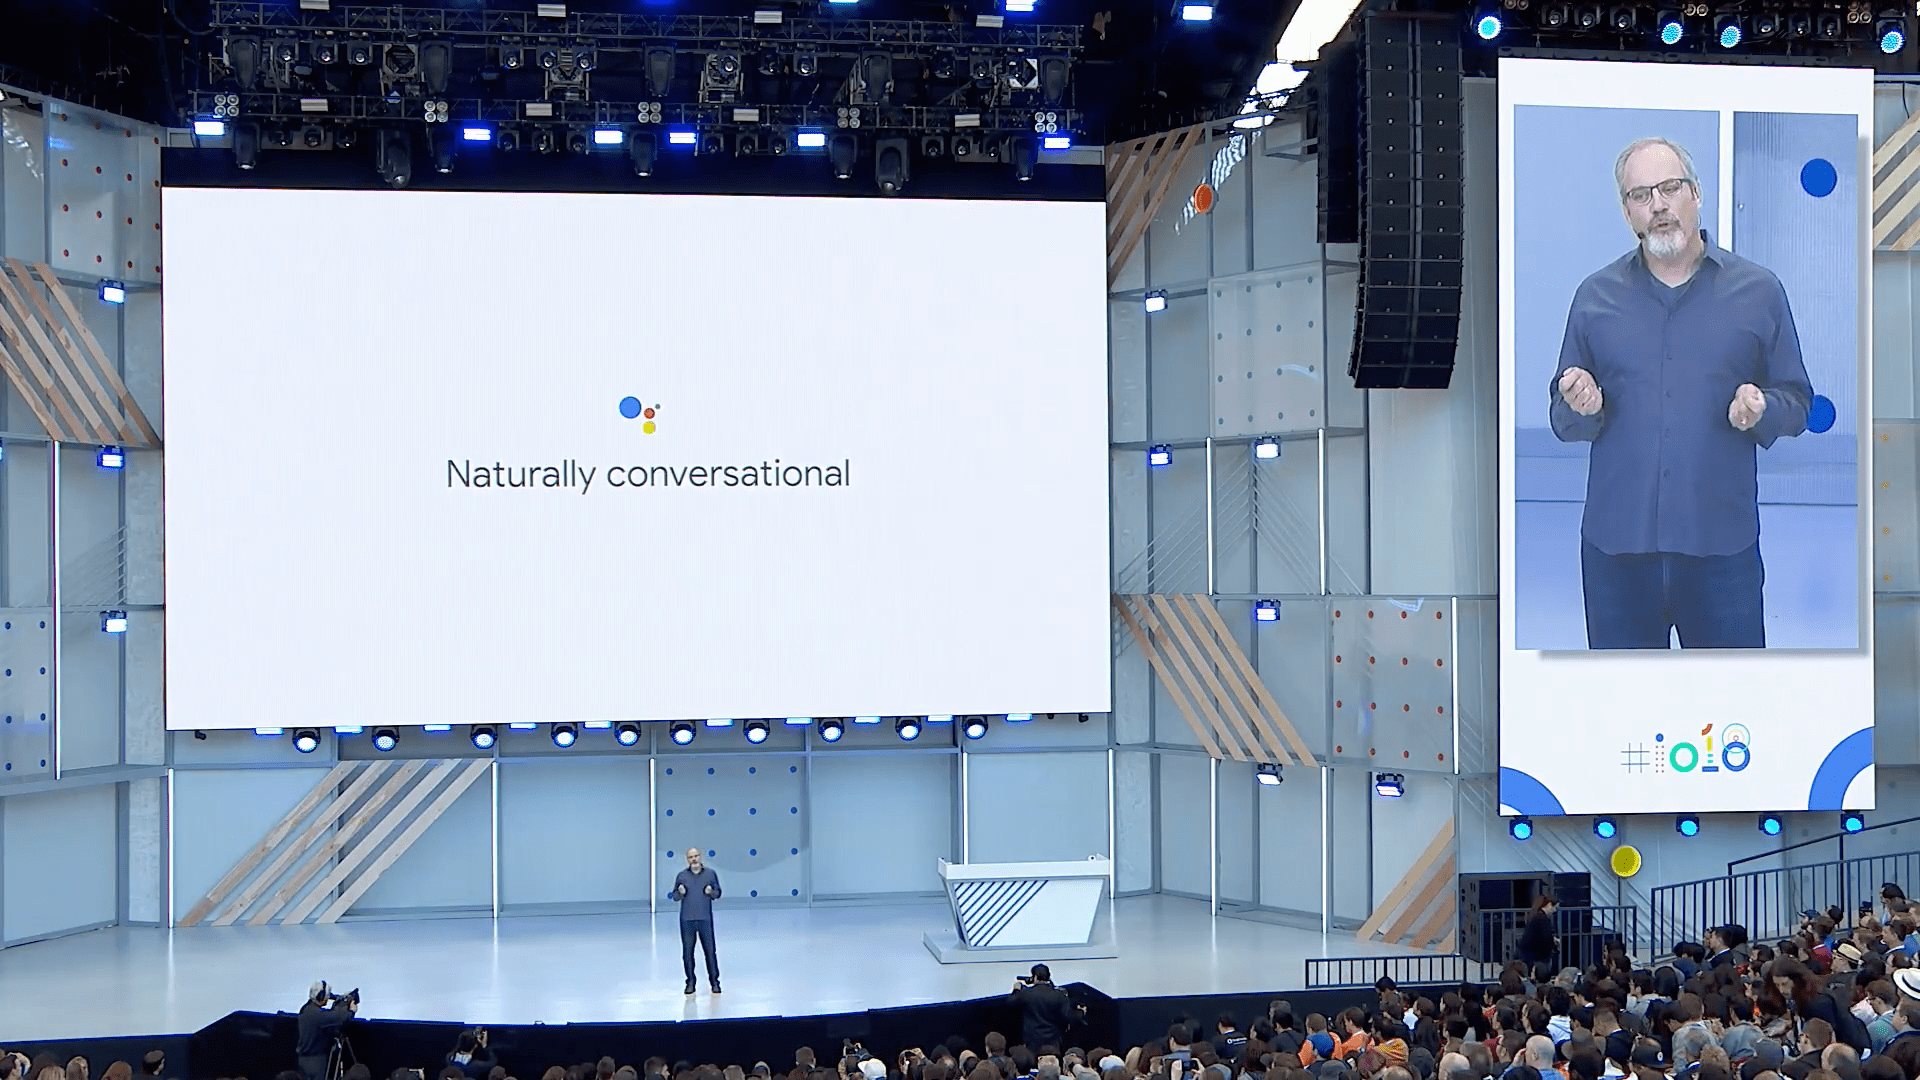 Big changes coming to Google Assistant